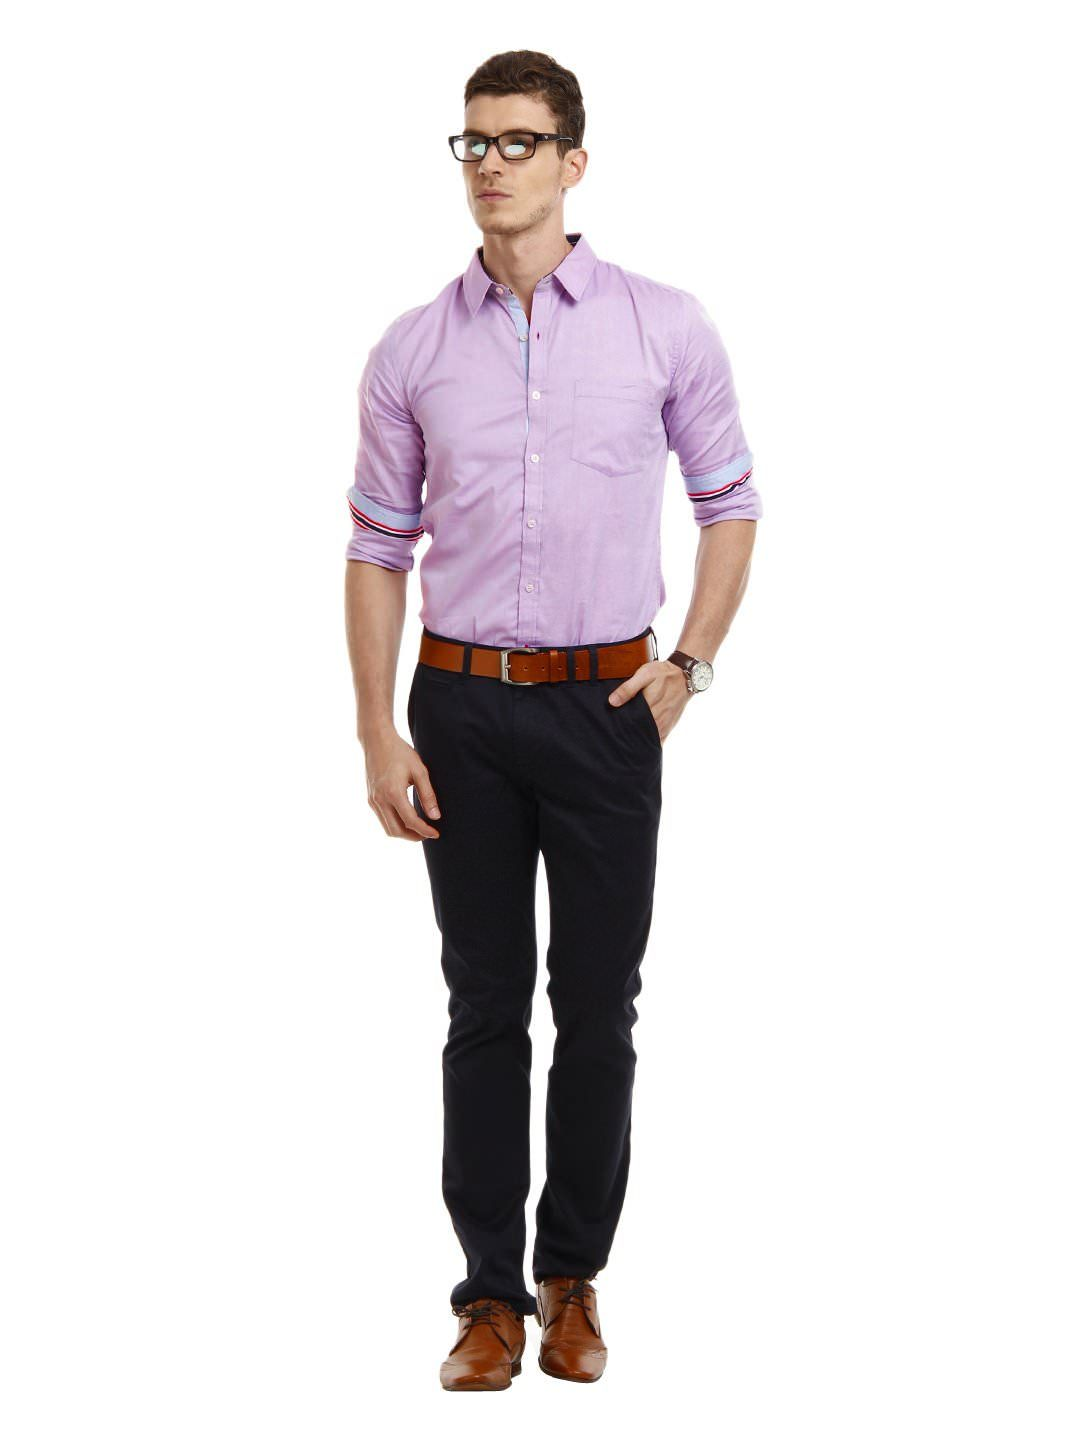 Mast,Harbour,Men,Lavender,Marigold,Slim,Fit,Smart, · Casual Work  OutfitsOutfits